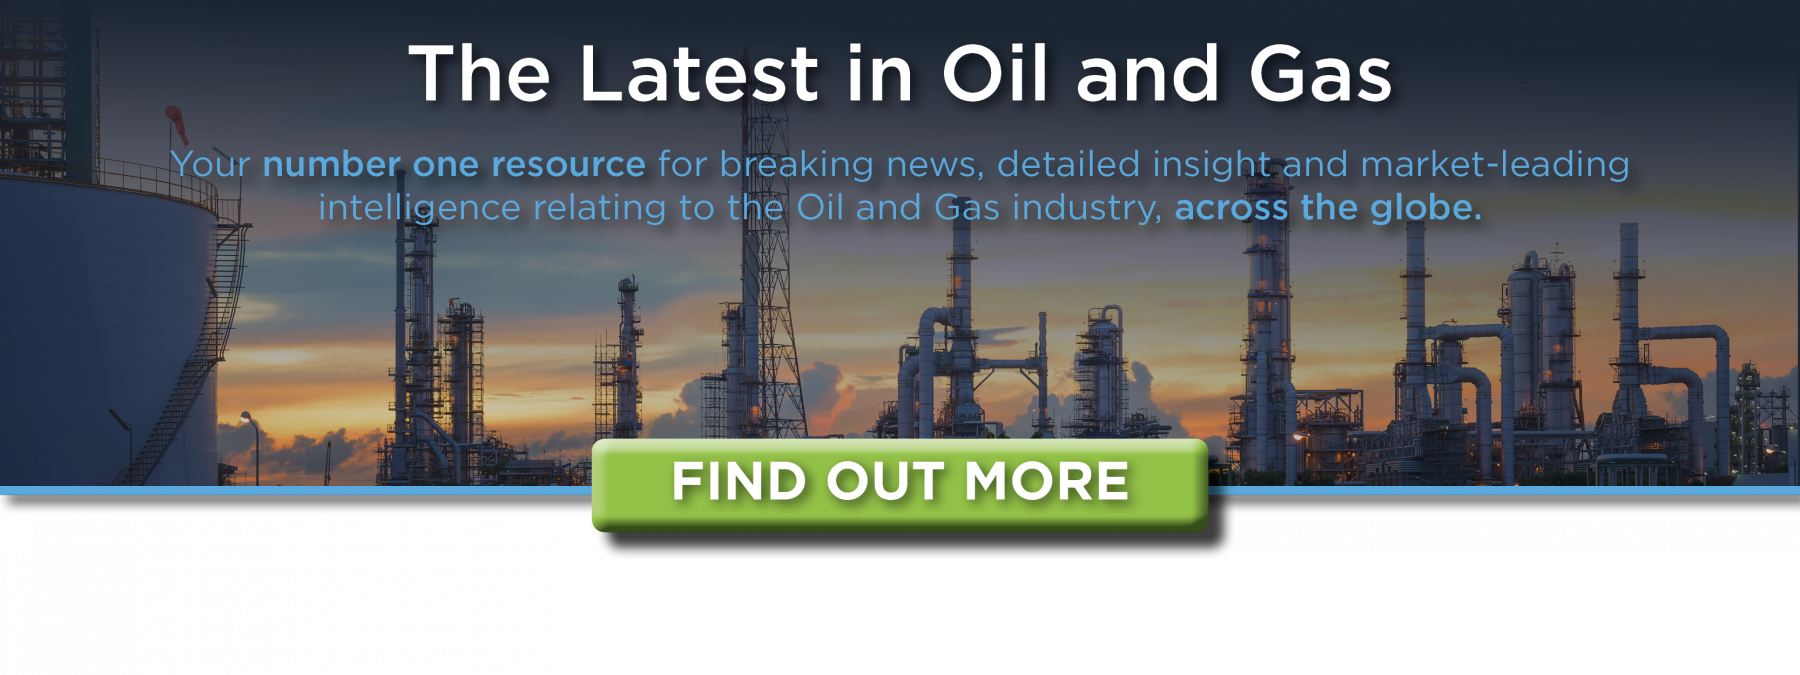 The latest oil and gas news from the UK and worldwide